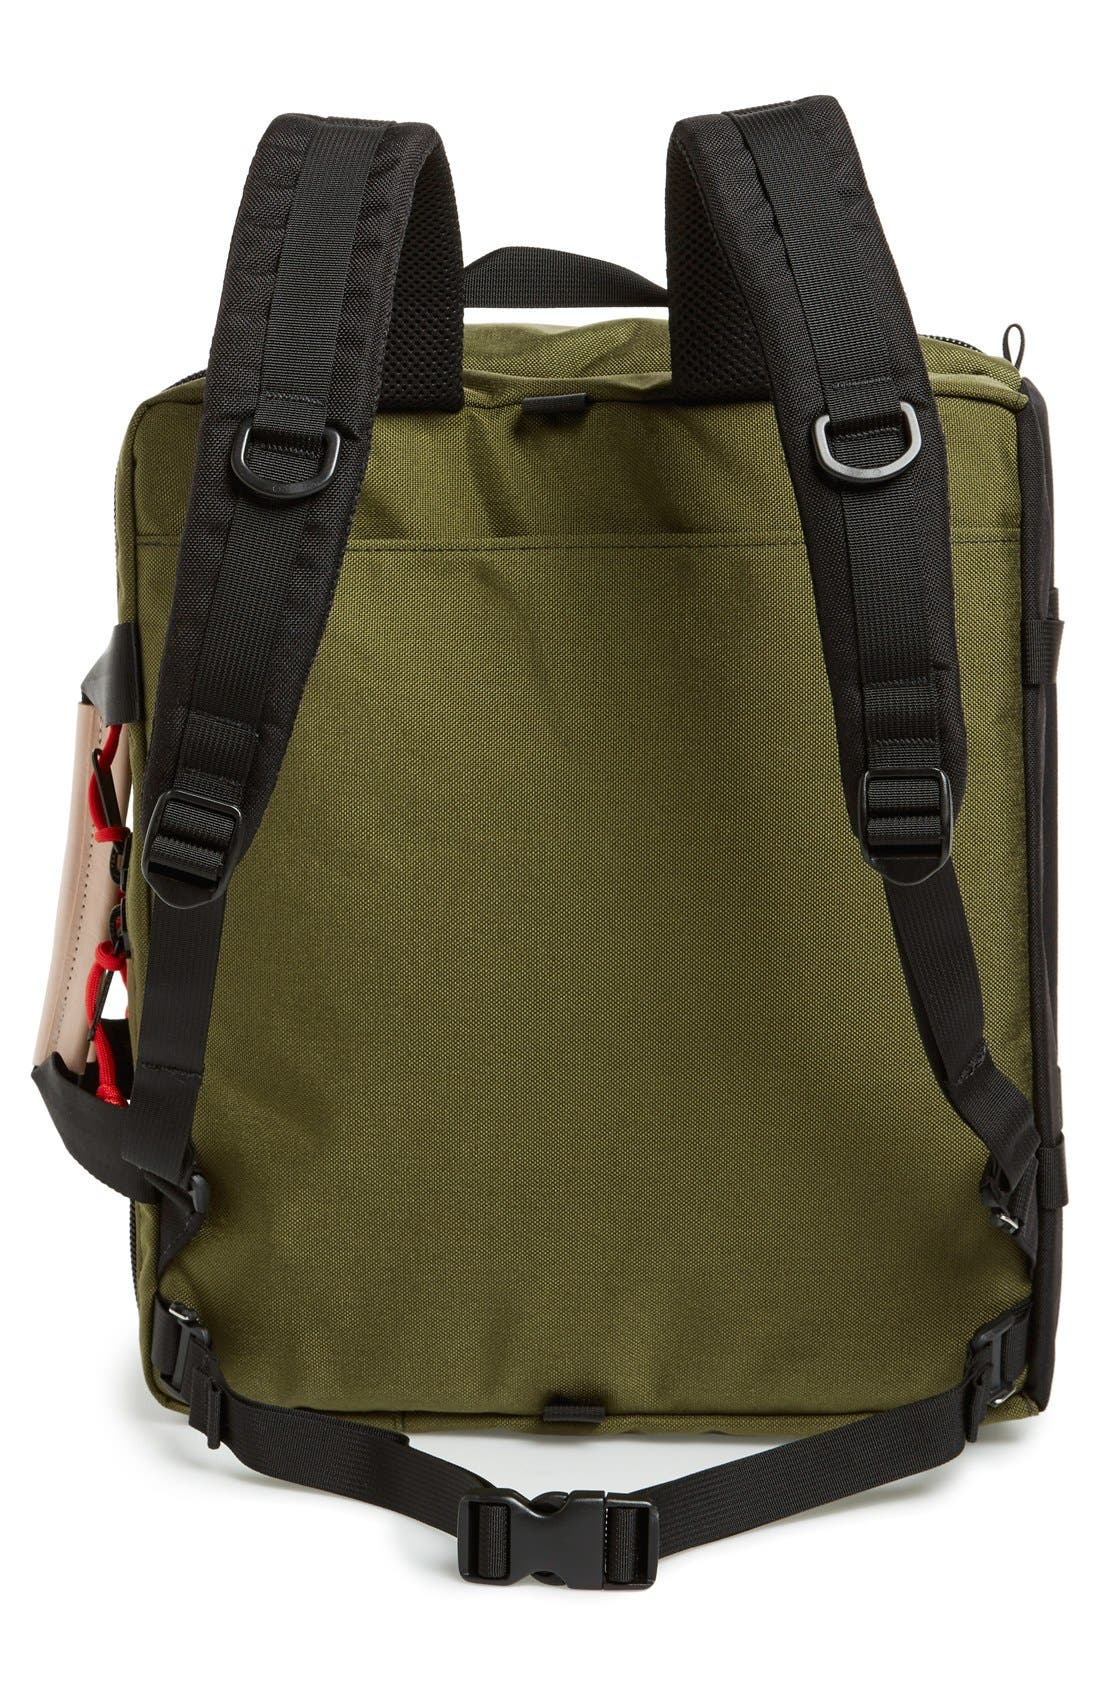 '3-Day' Briefcase,                             Alternate thumbnail 3, color,                             Black/ Olive